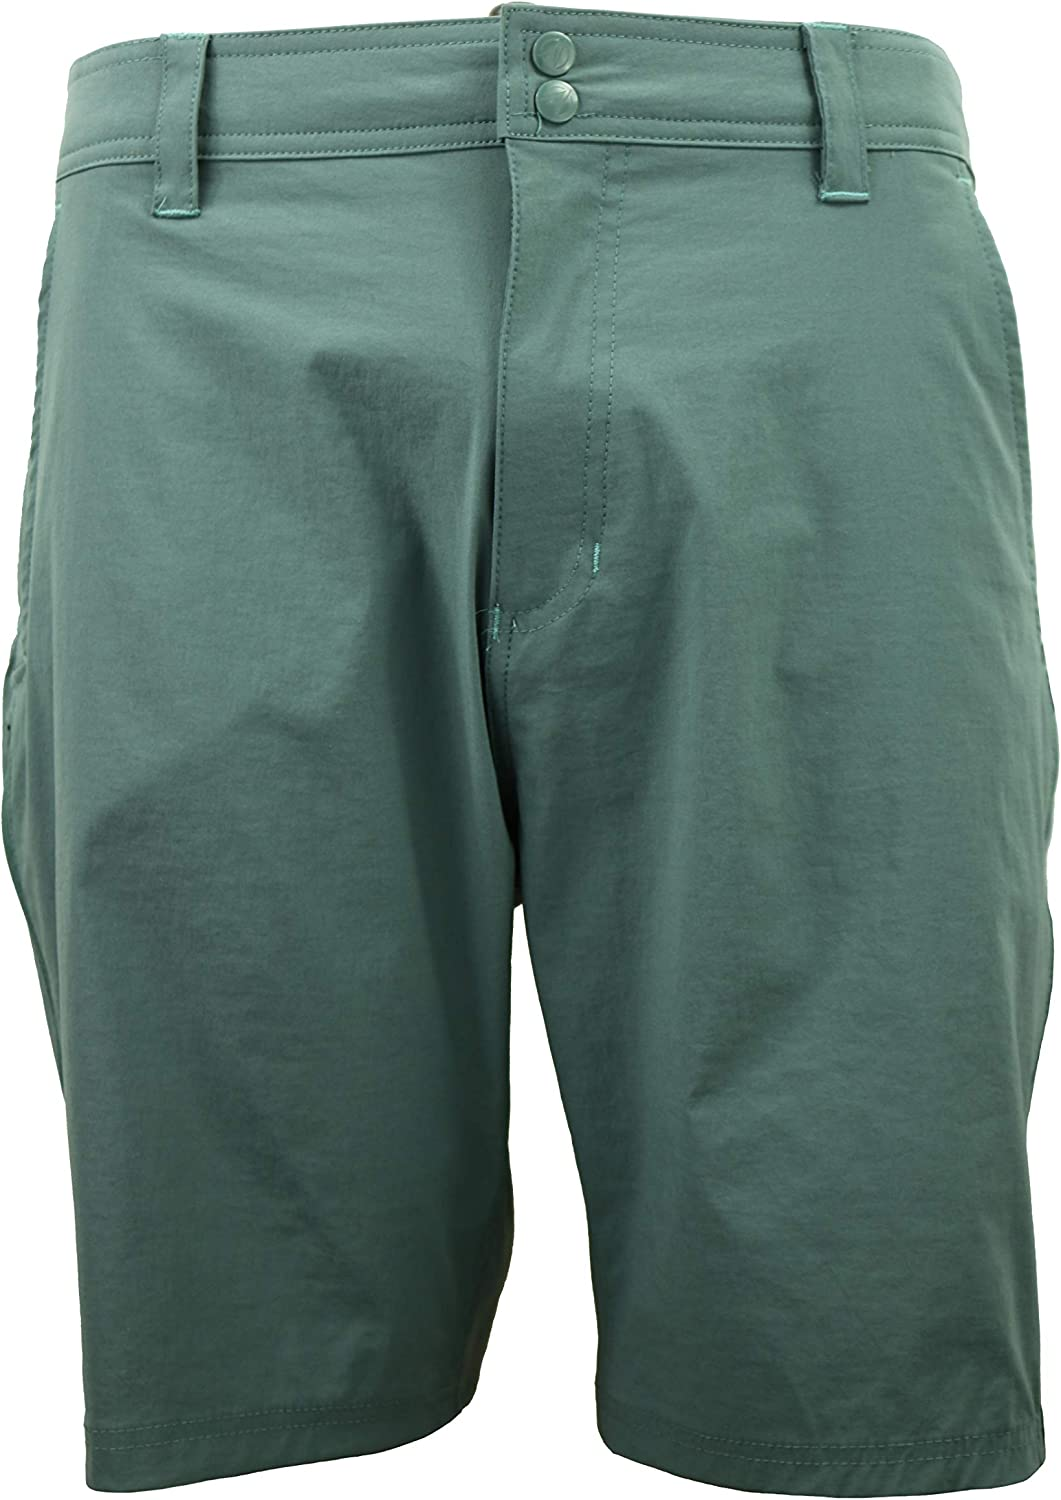 Gillz Men's Tournament Fishing Shorts with Venting - Adjustable Zipper Venting | UV Protection